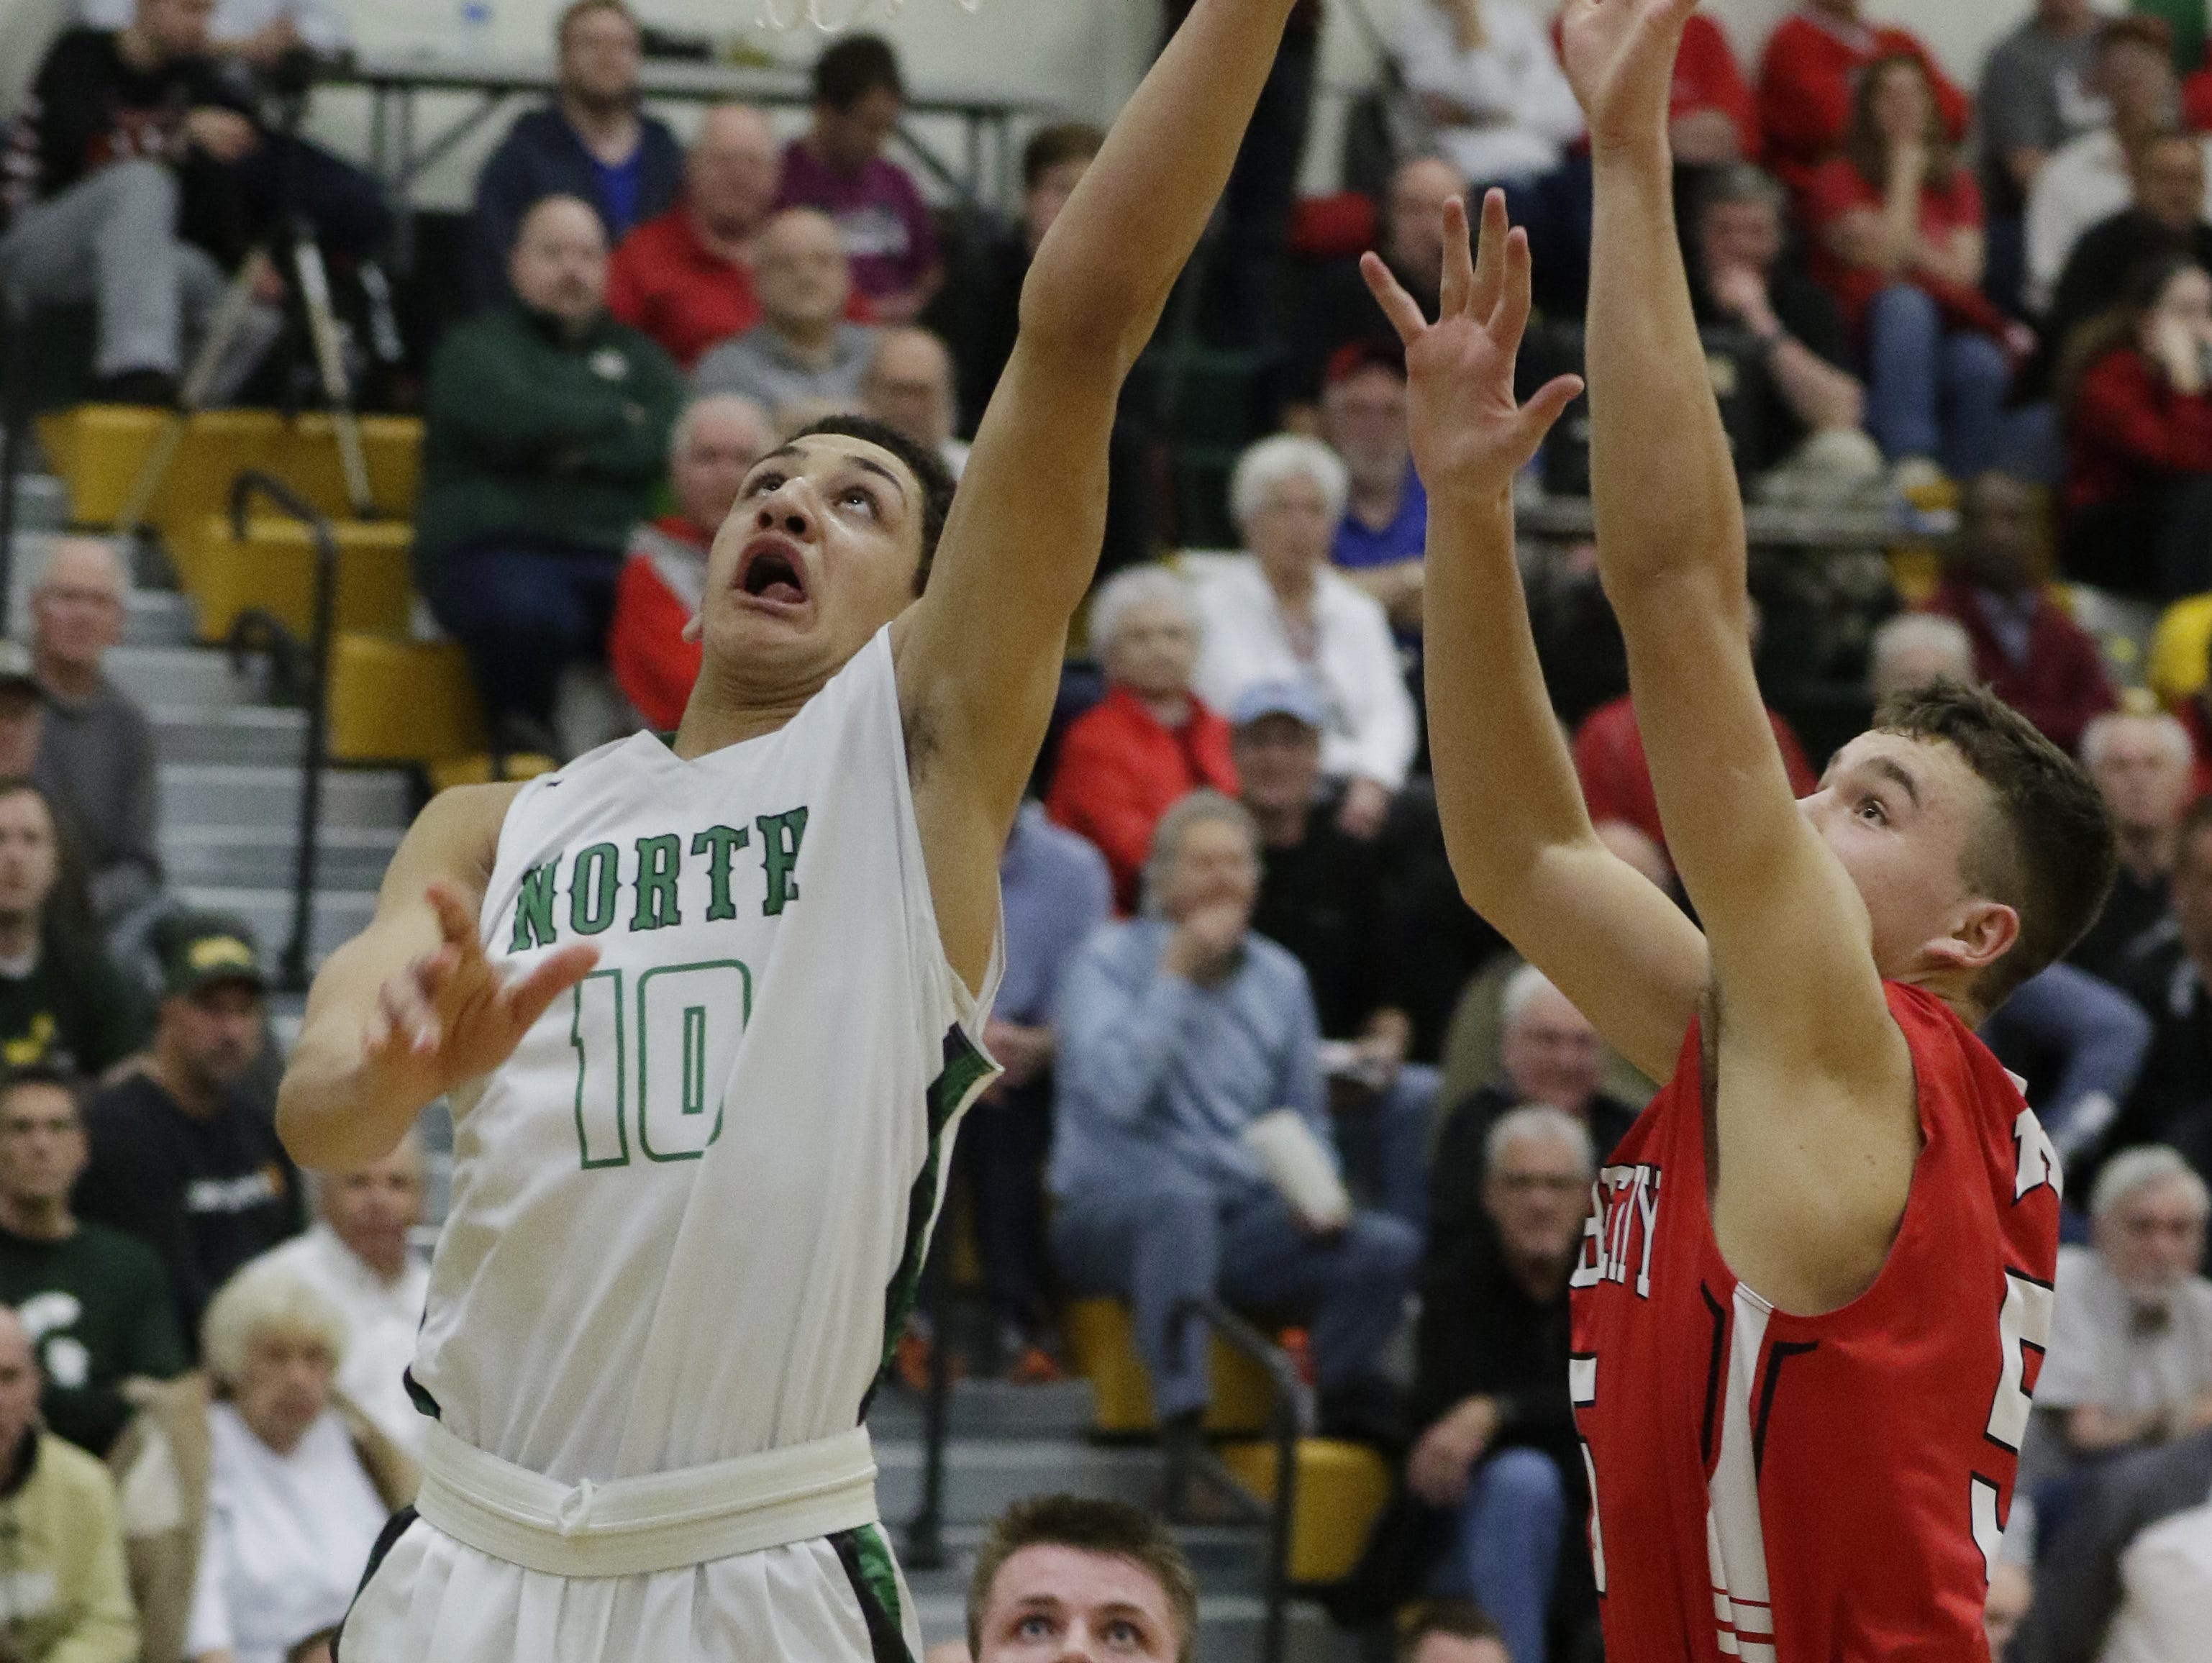 Oshkosh North's Quincy Anderson goes for a layup against Kimberly on Tuesday night.